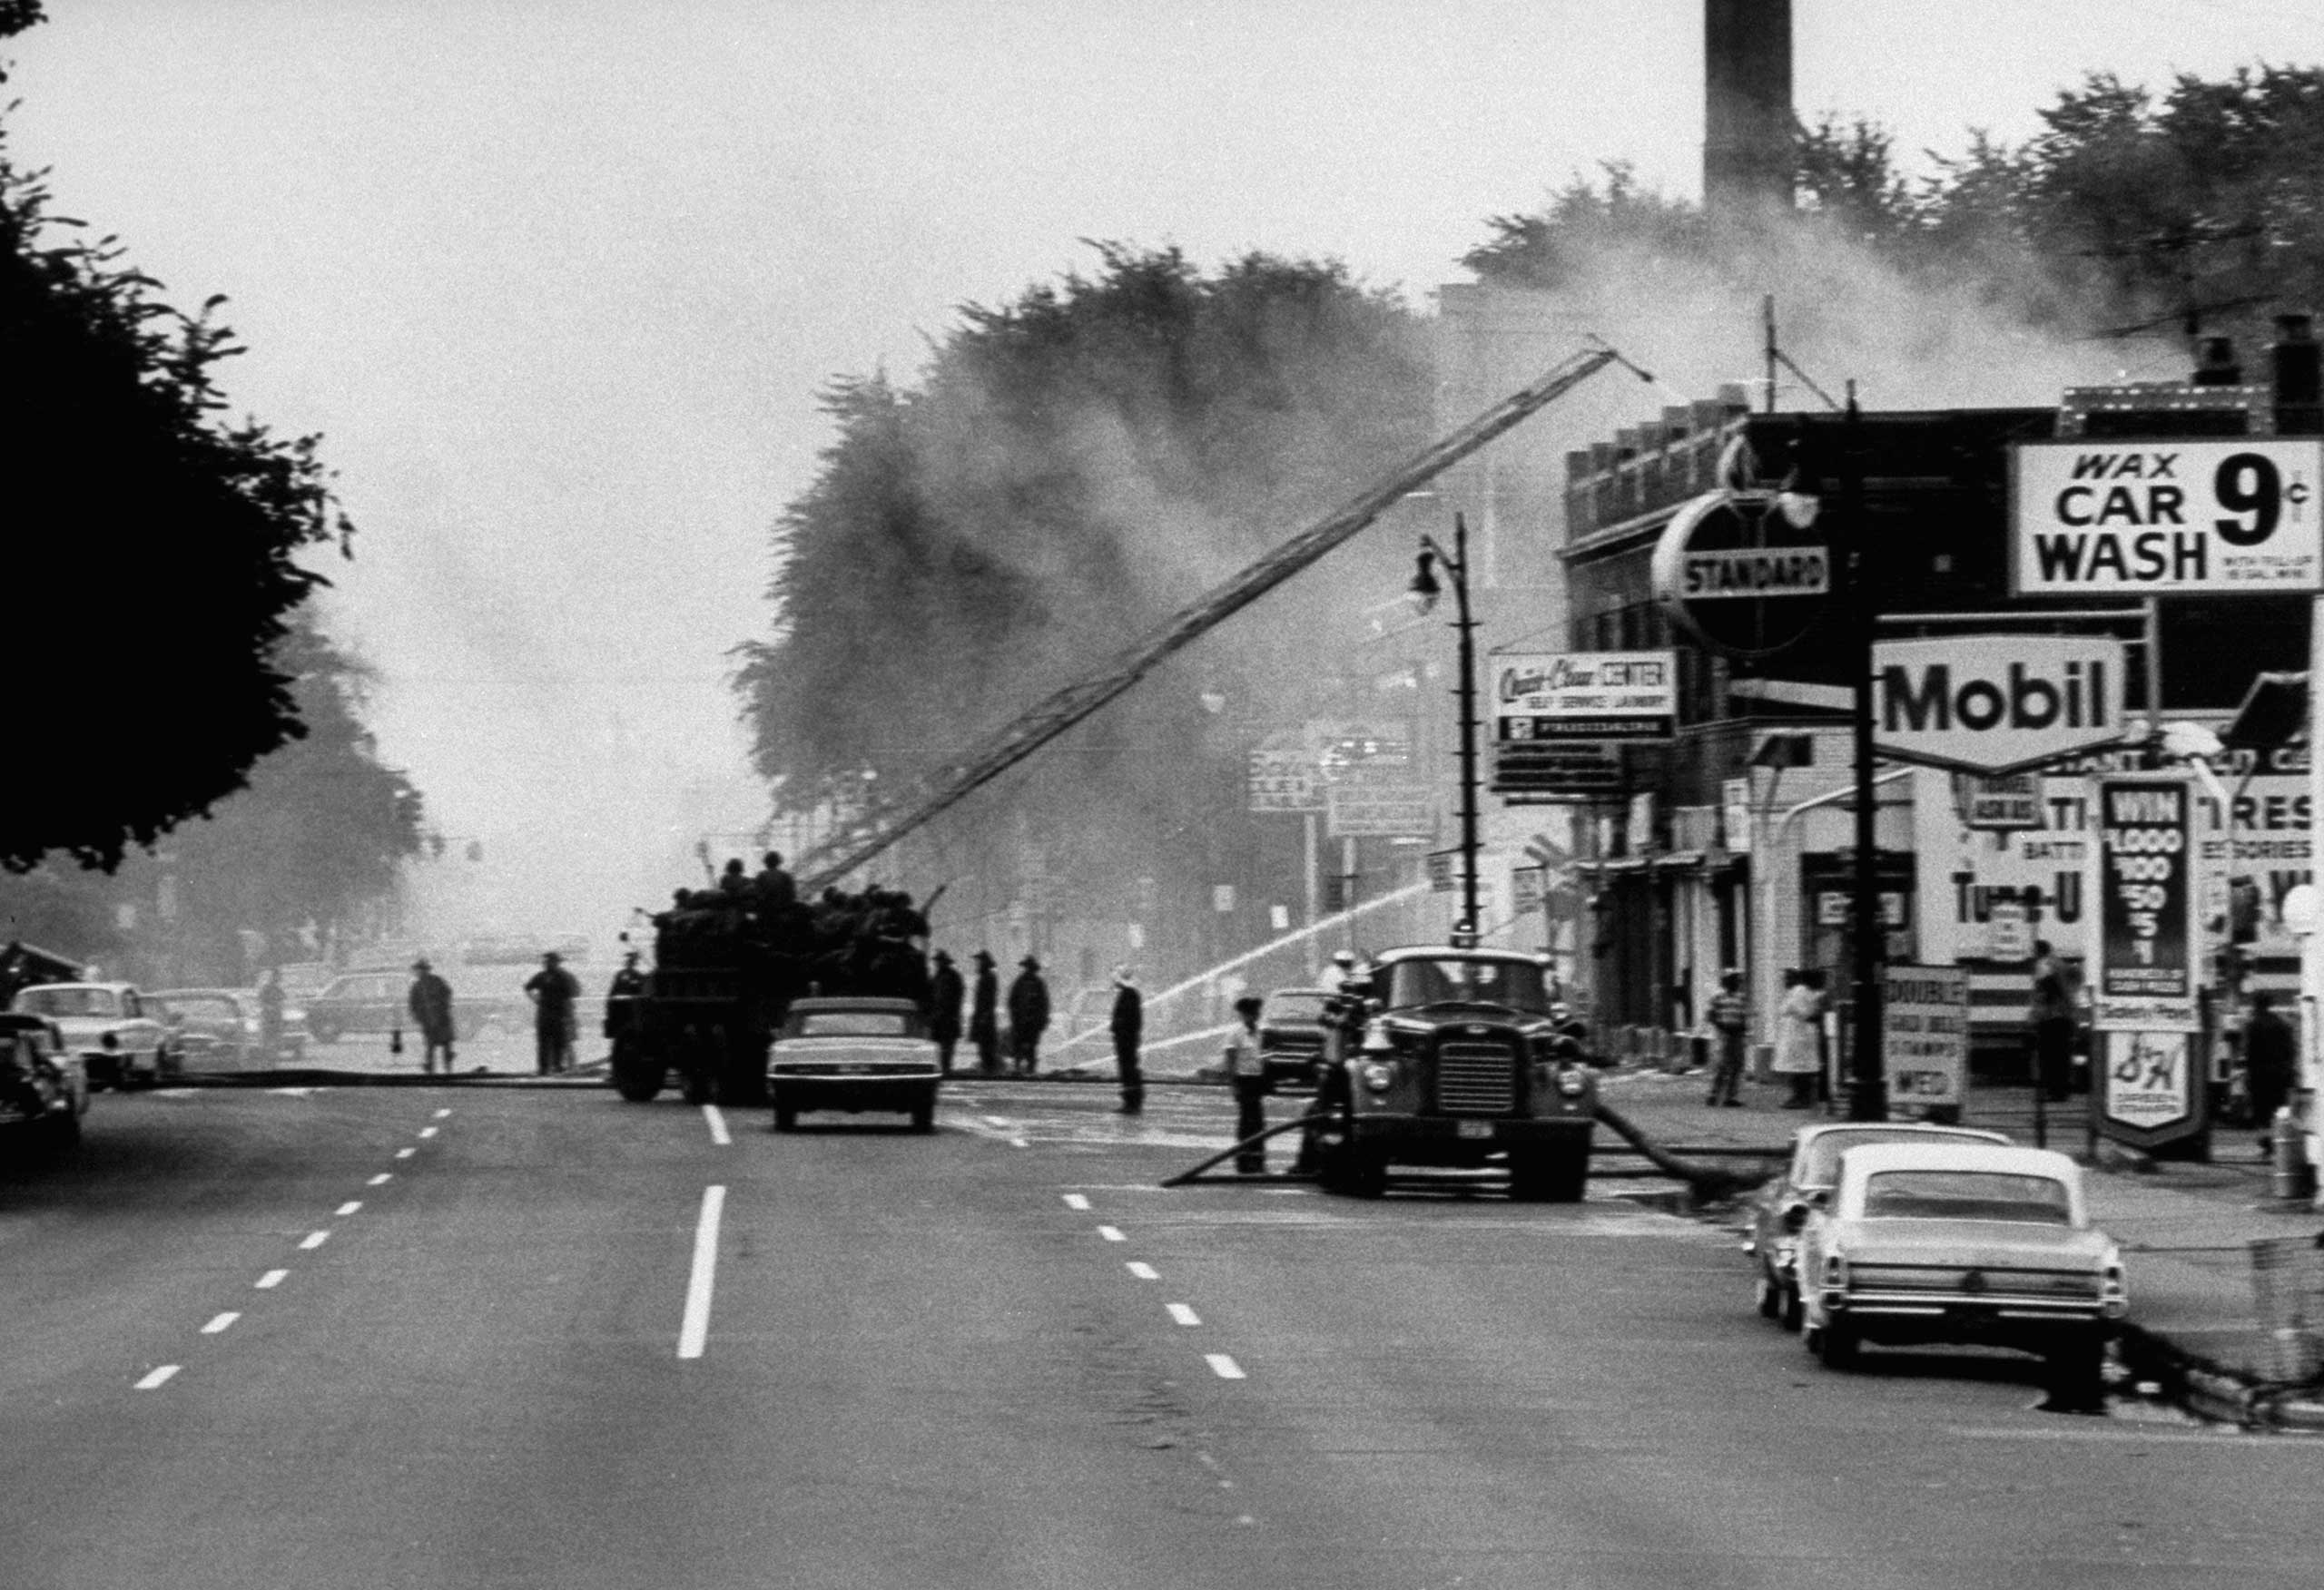 <b>Not published in LIFE.</b> Detroit, July 1967.